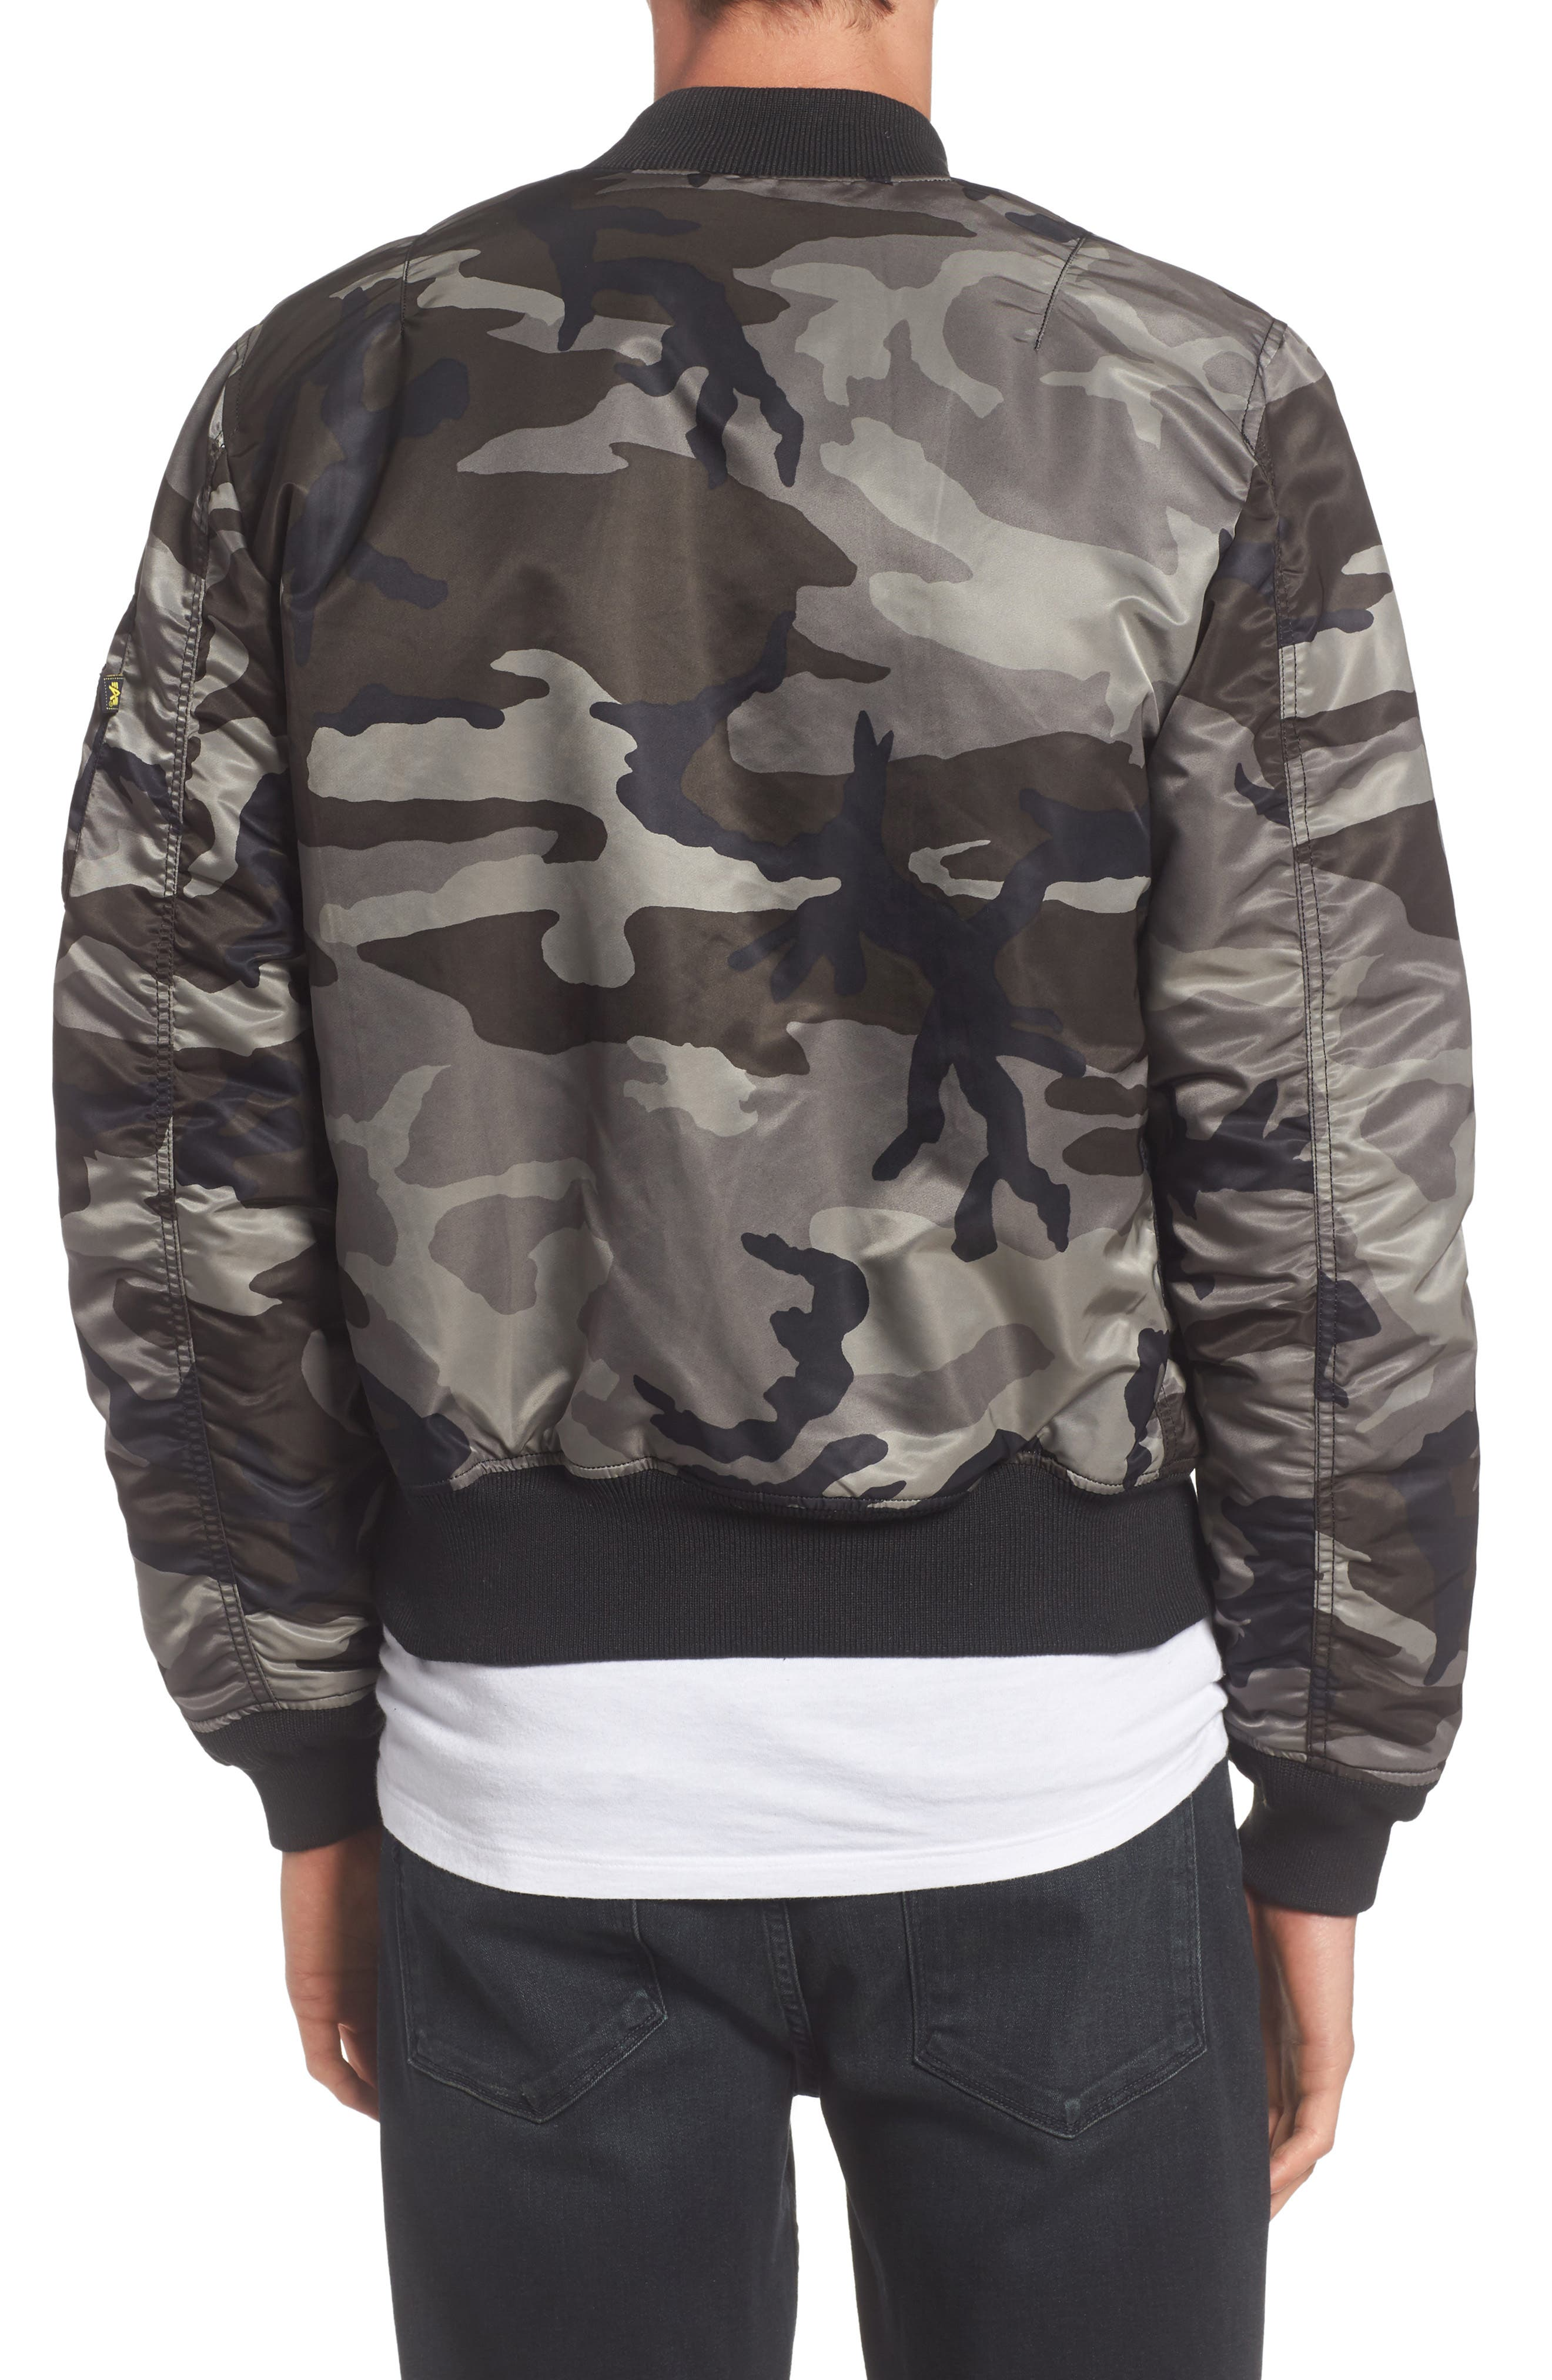 'MA-1' Slim Fit Bomber Jacket,                             Alternate thumbnail 2, color,                             005